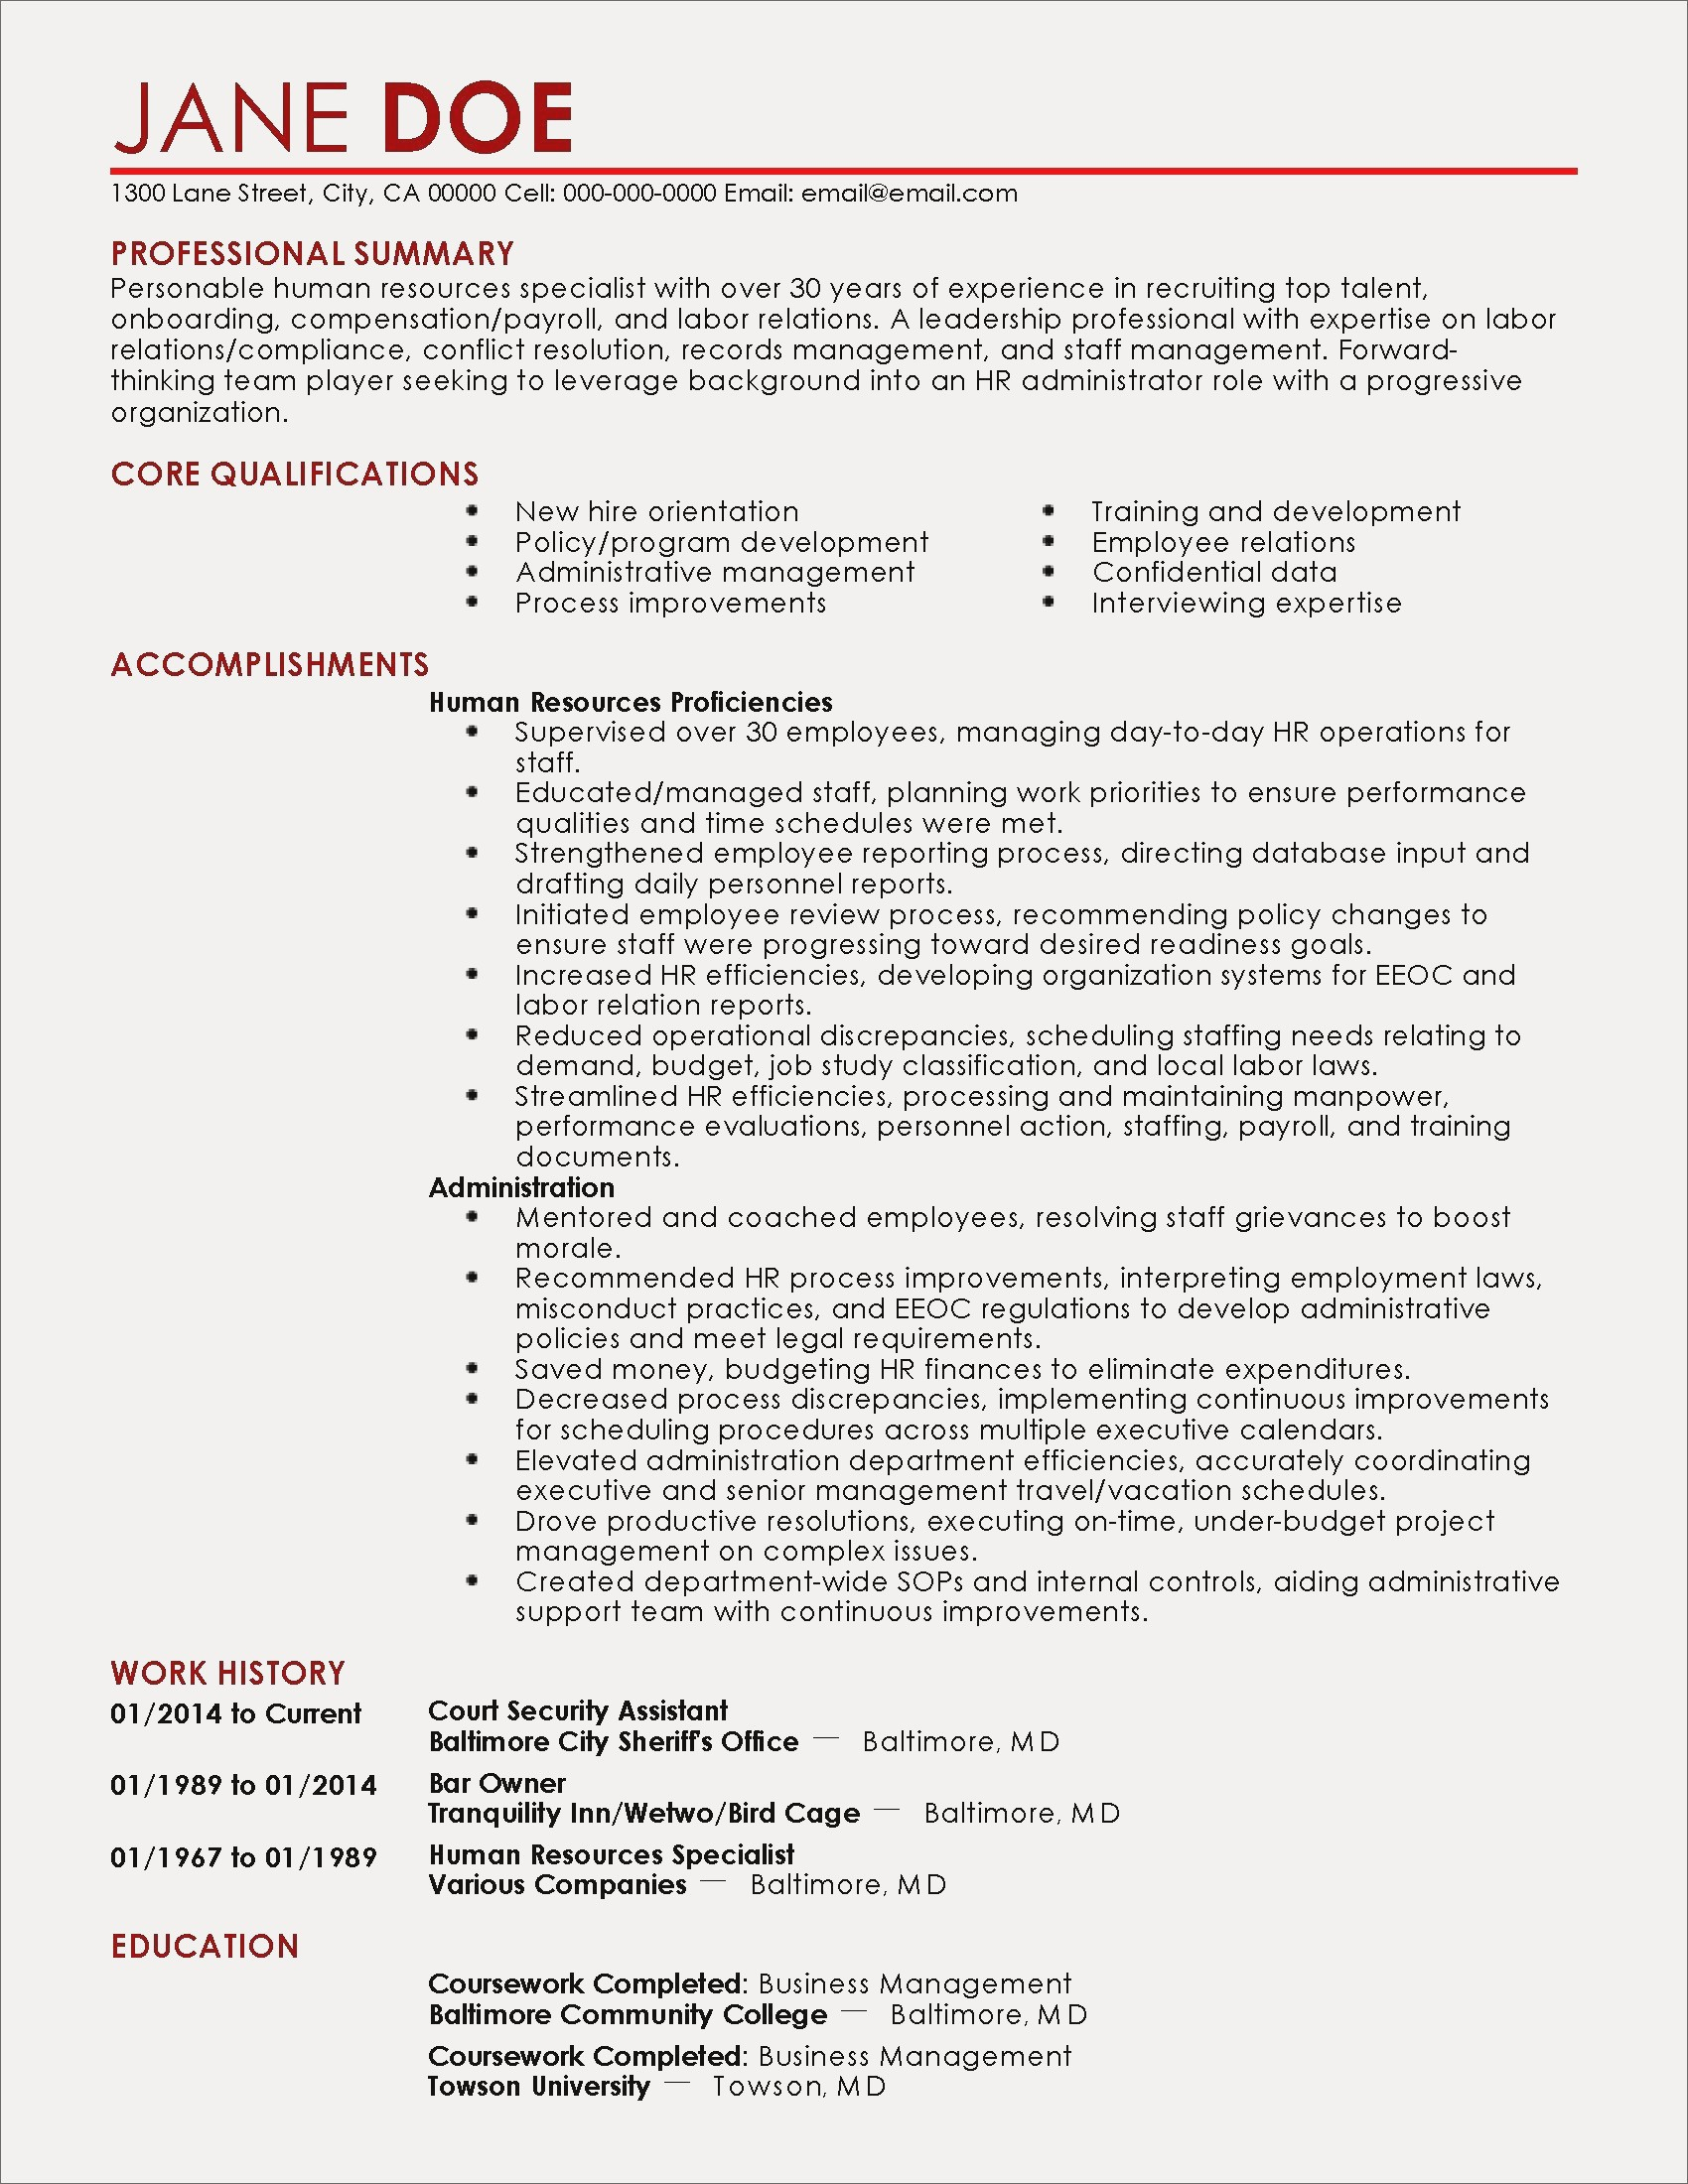 Medical Administrative assistant Resume - Medical Administrative assistant Resume Samples Save Medical